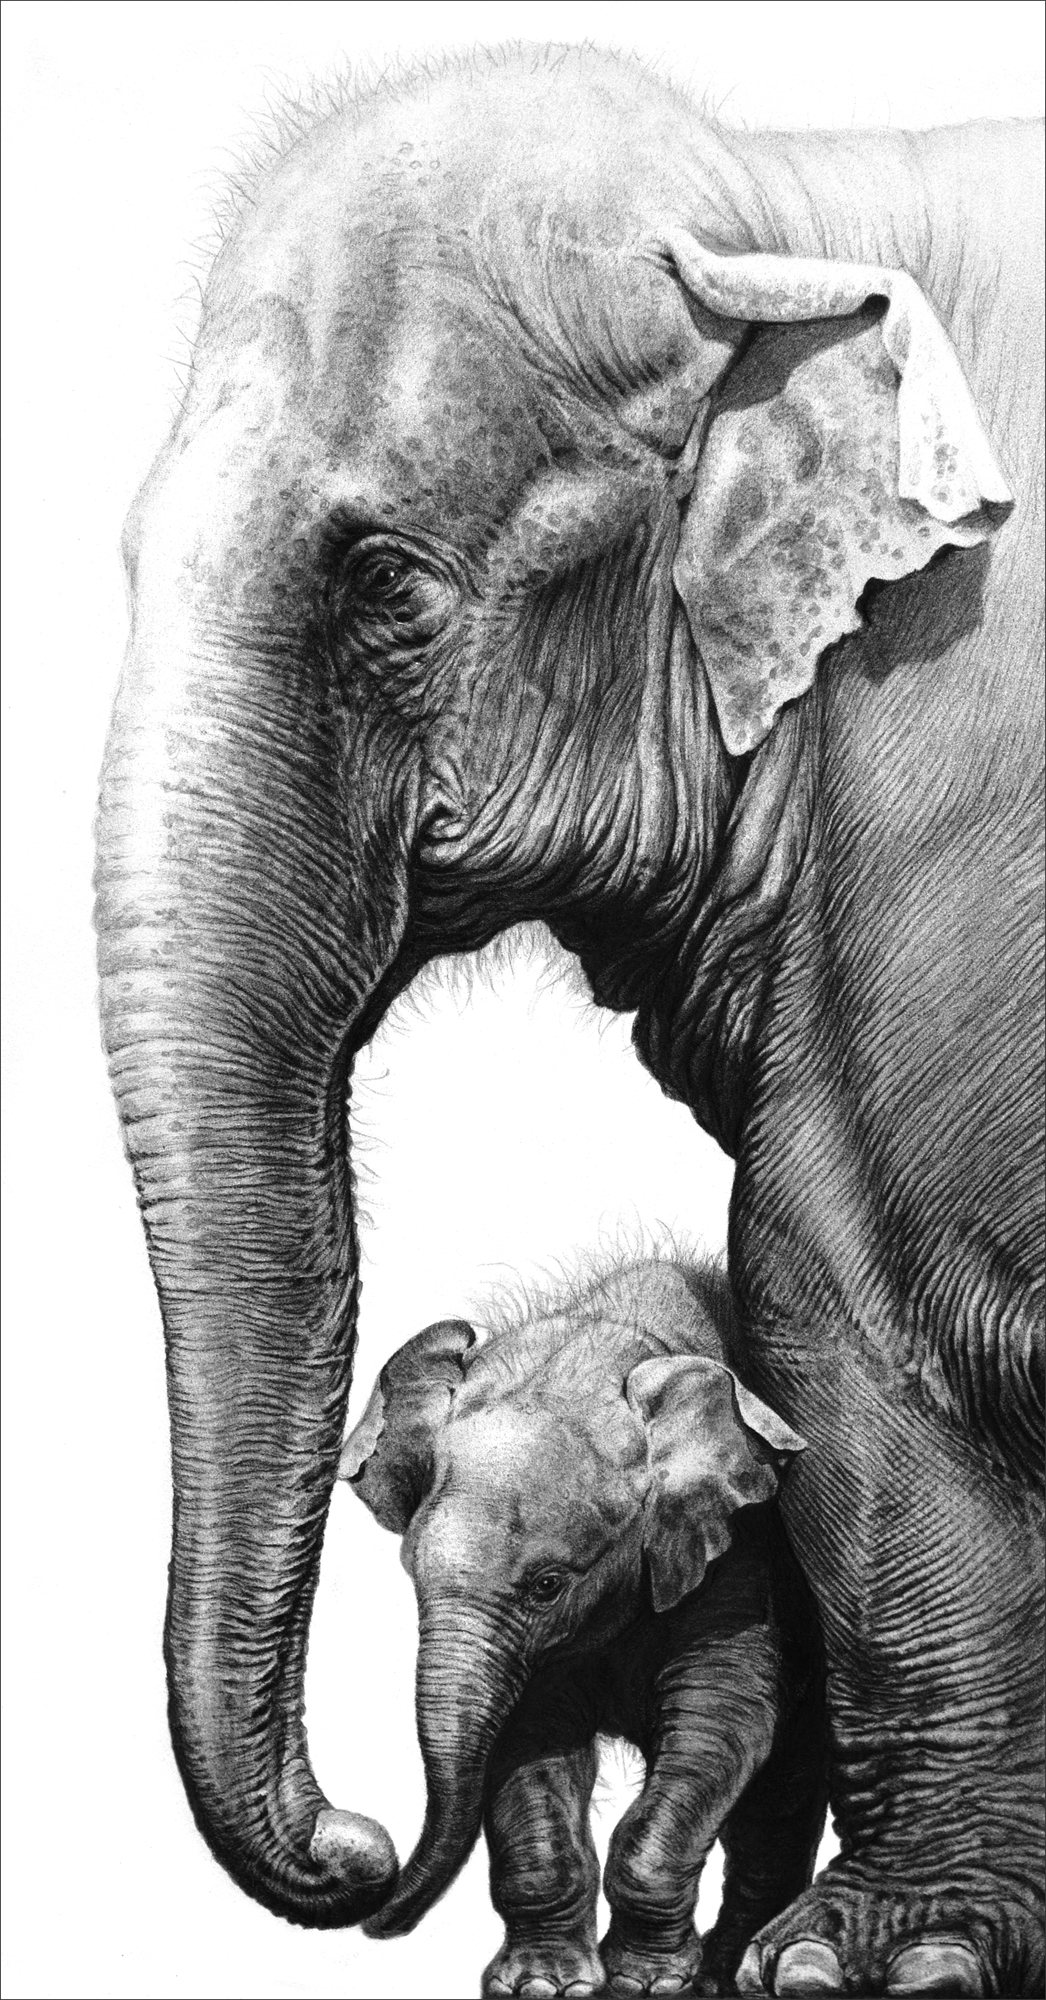 Elephant drawings by gary hodges